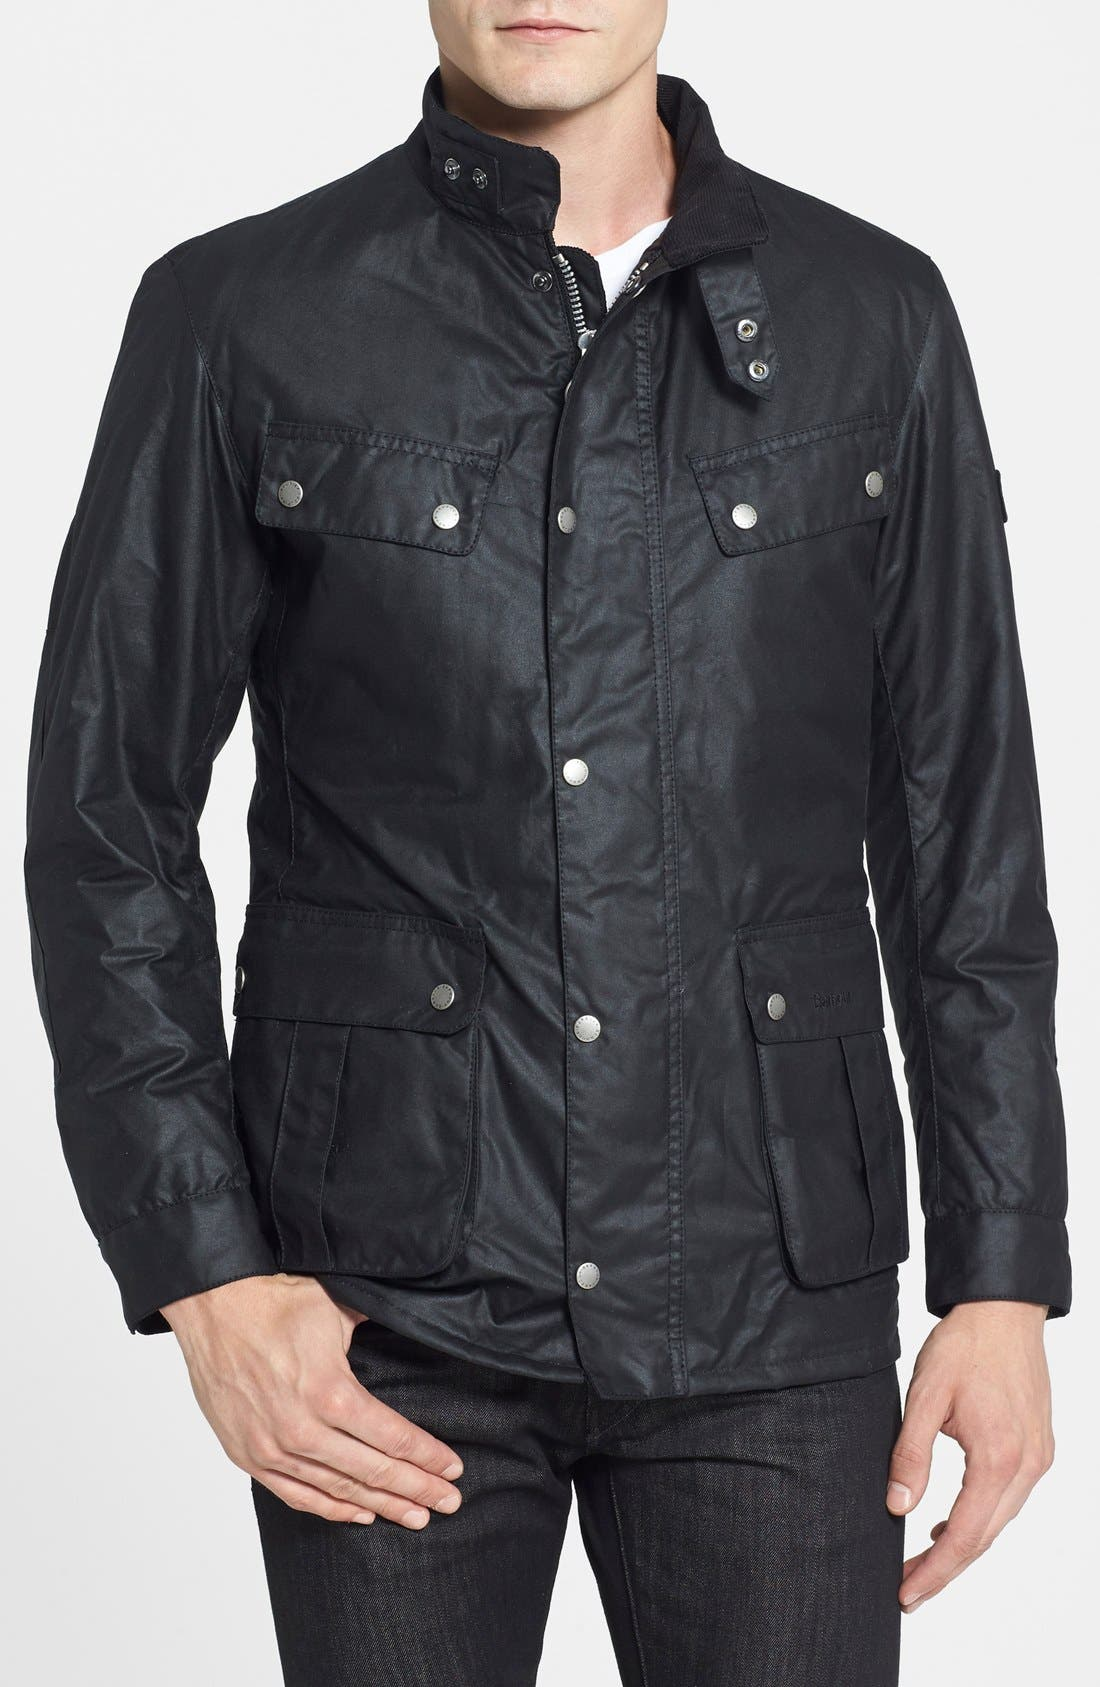 Barbour jacket womens quilted